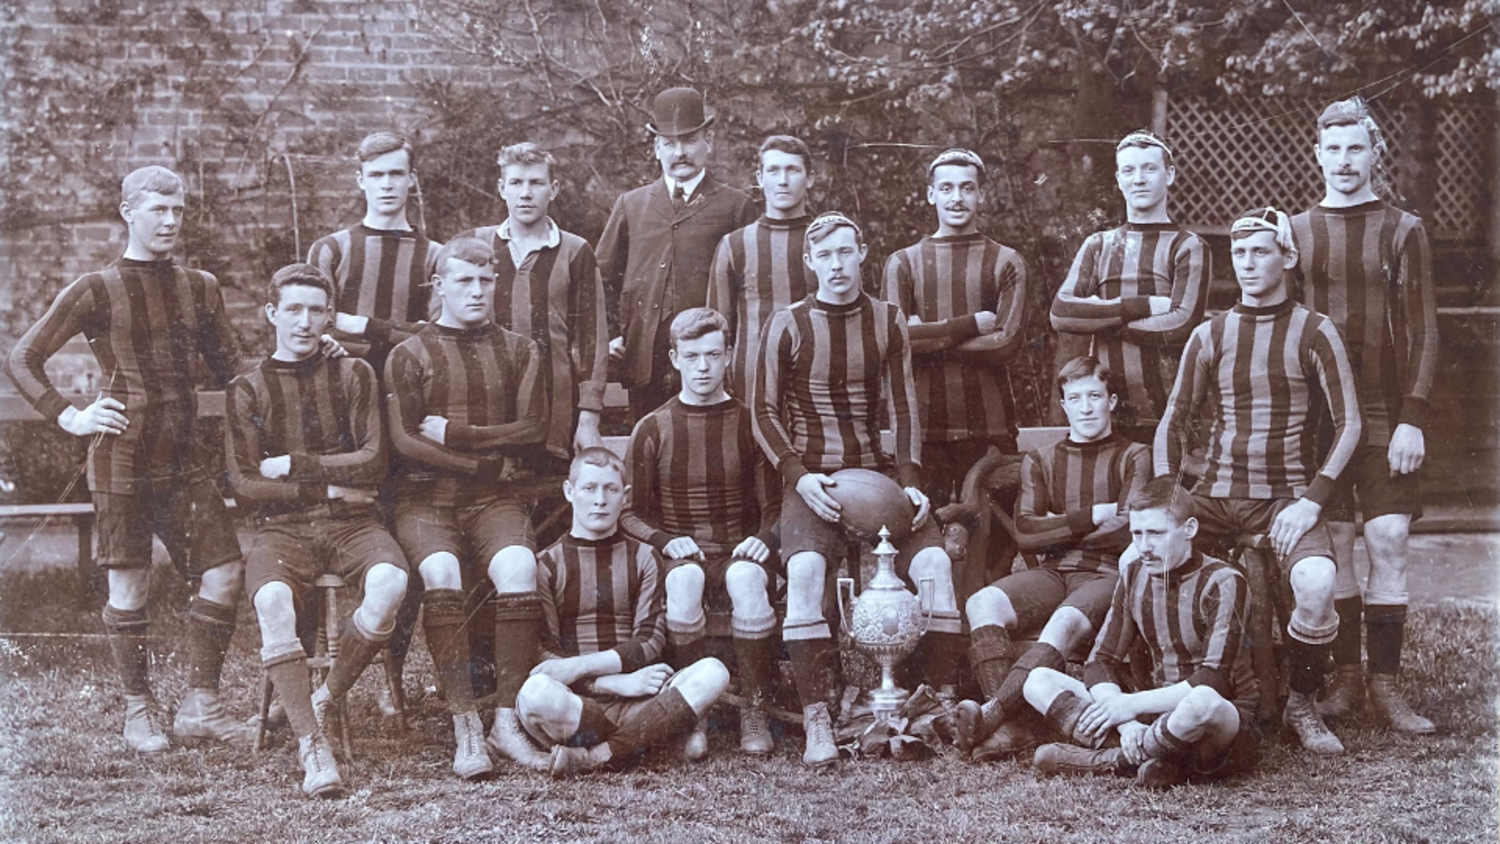 Frank Anderson can be seen in Northampton's A team photos from the early 1900s.